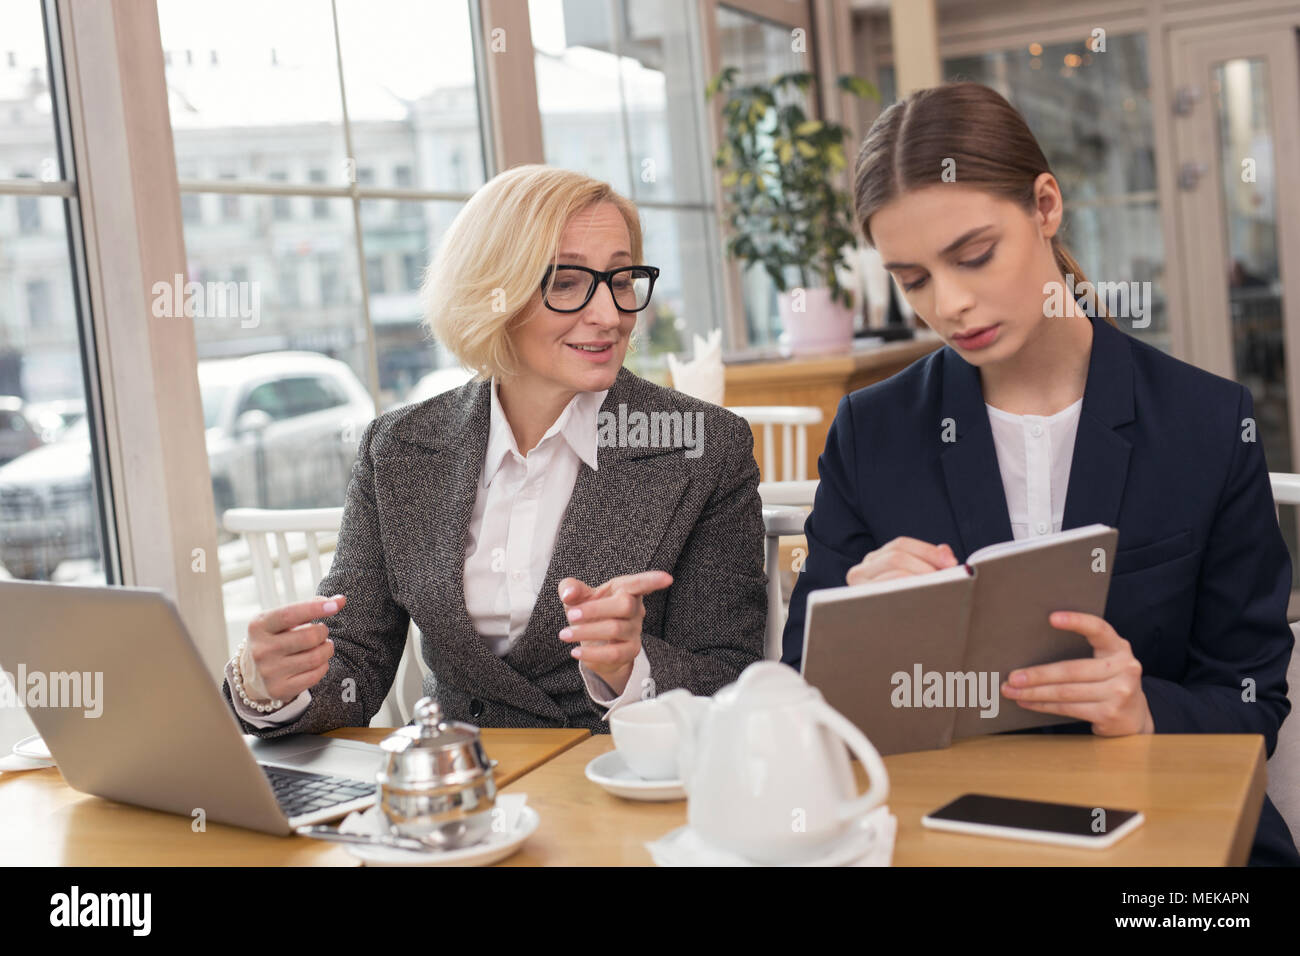 Inspired woman discussing business with her employer - Stock Image